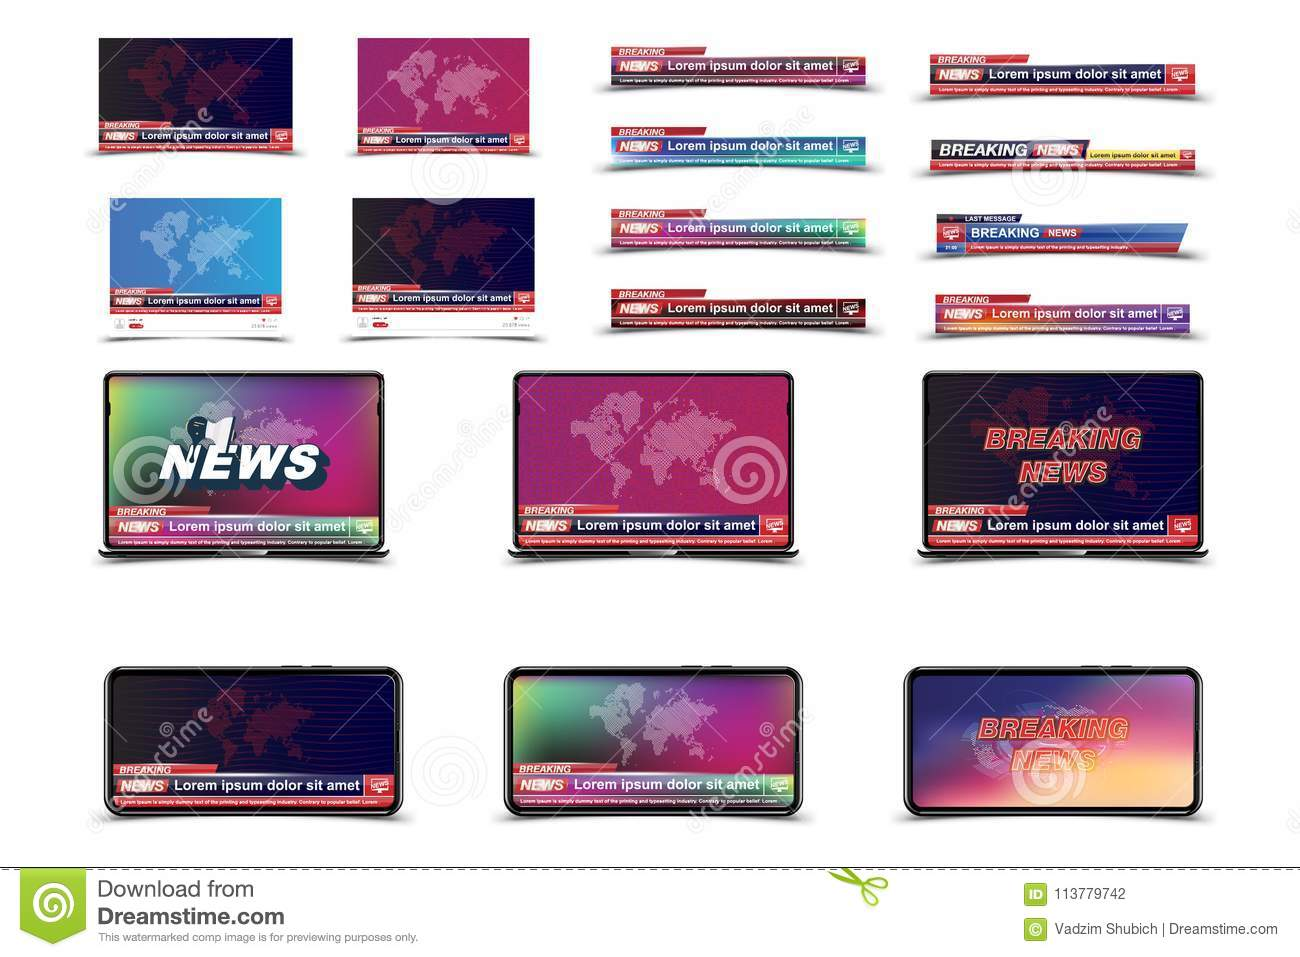 Set Banners Breaking News Template In Realistic Smartphone And Lap